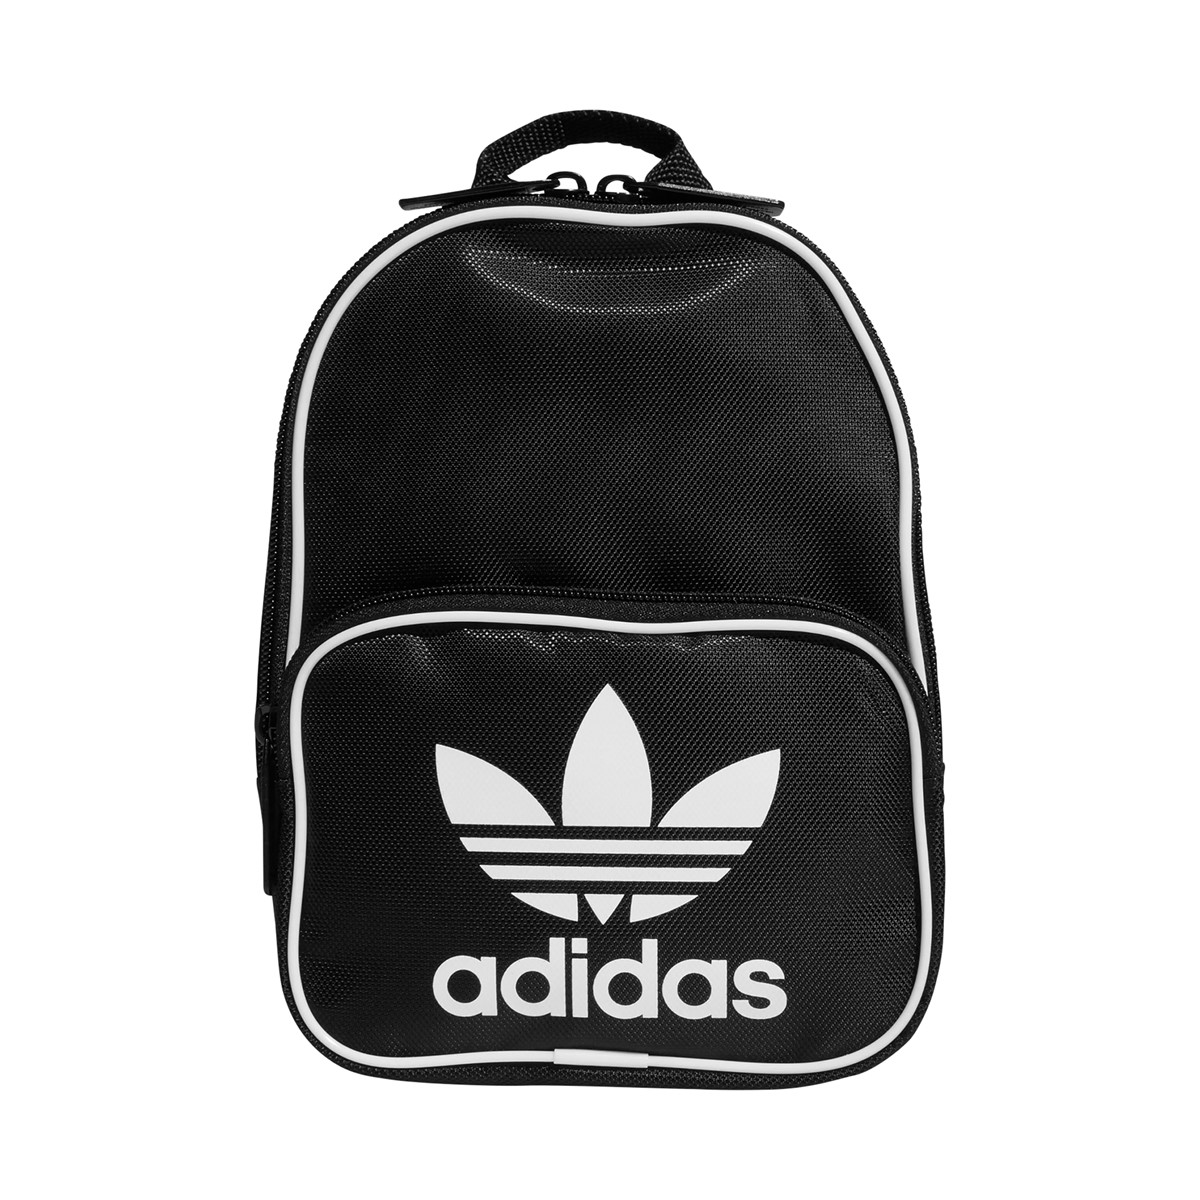 Originals Santiago Mini Backpack in Black